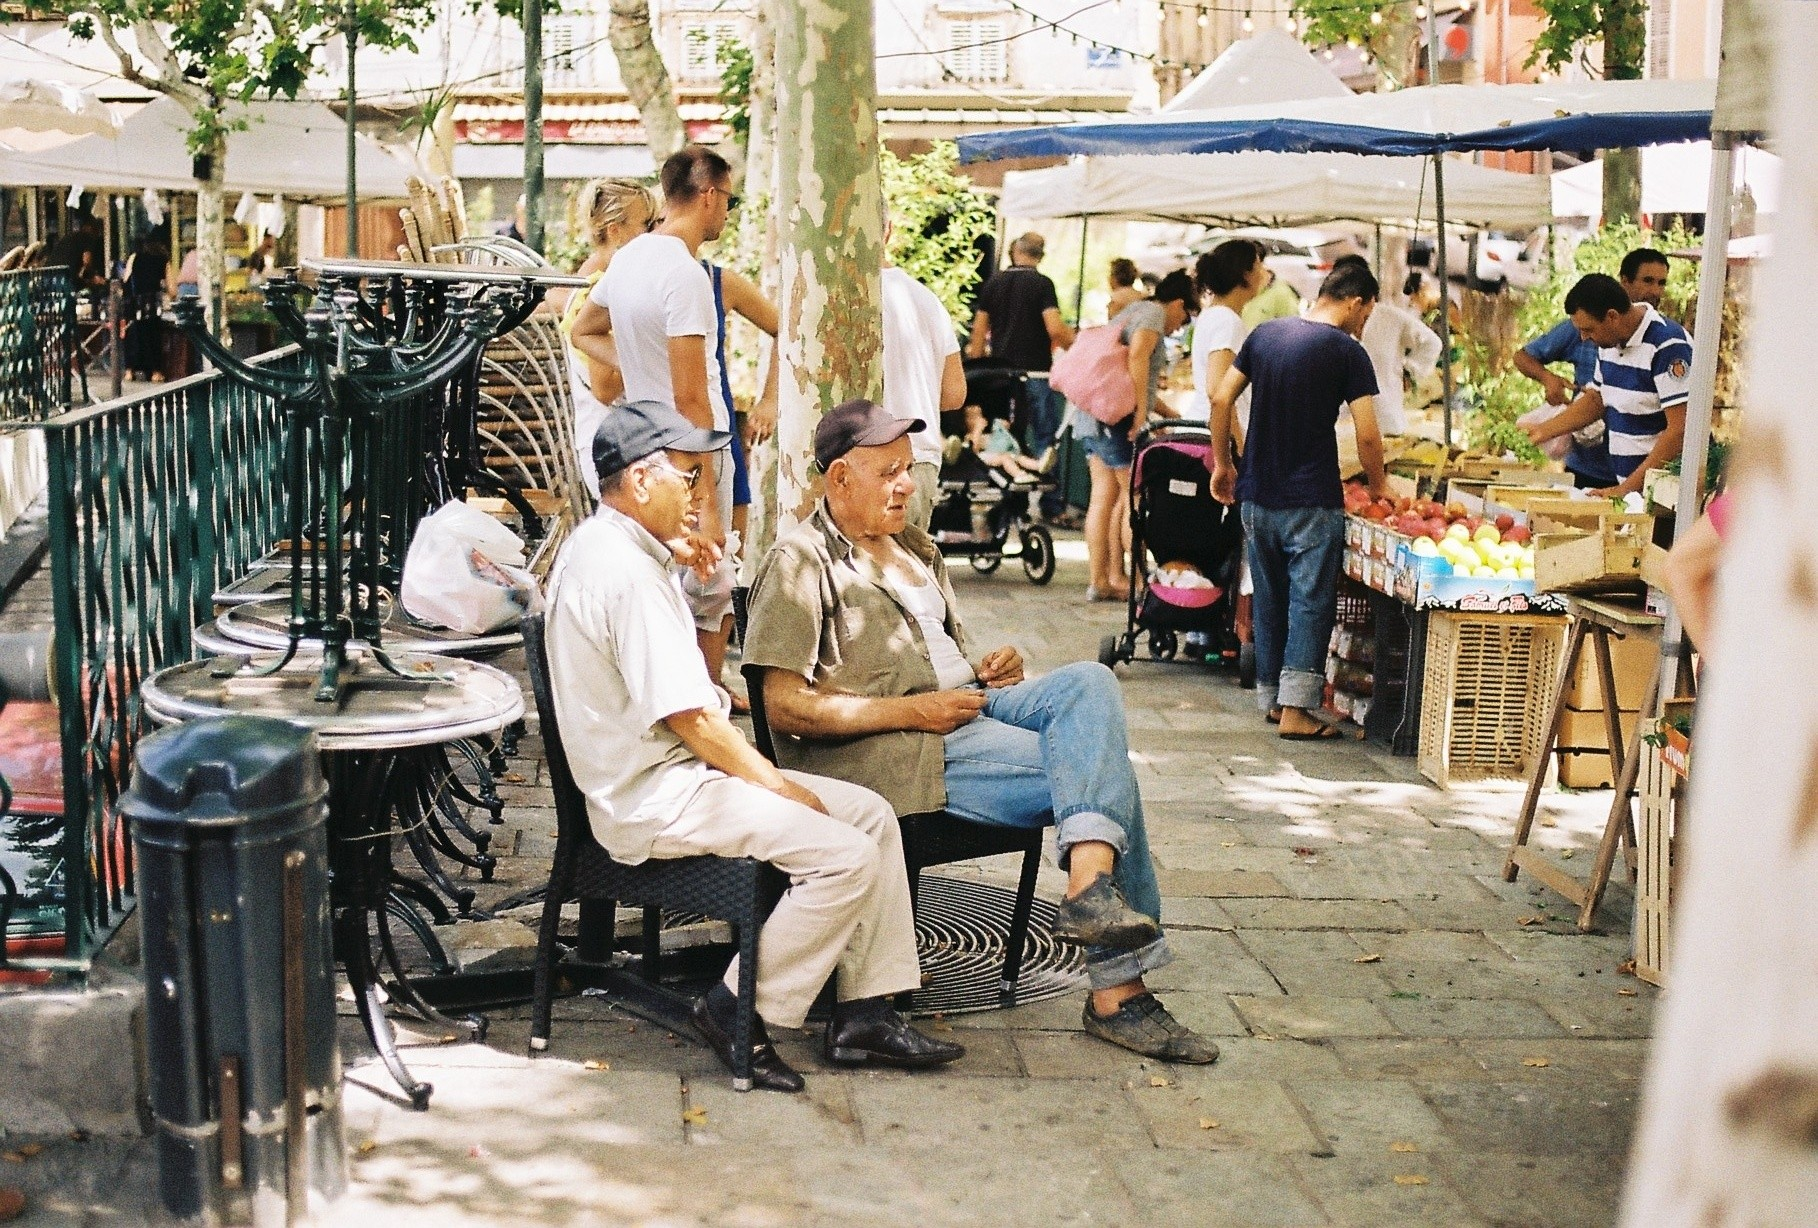 Love taking photos of old people at markets